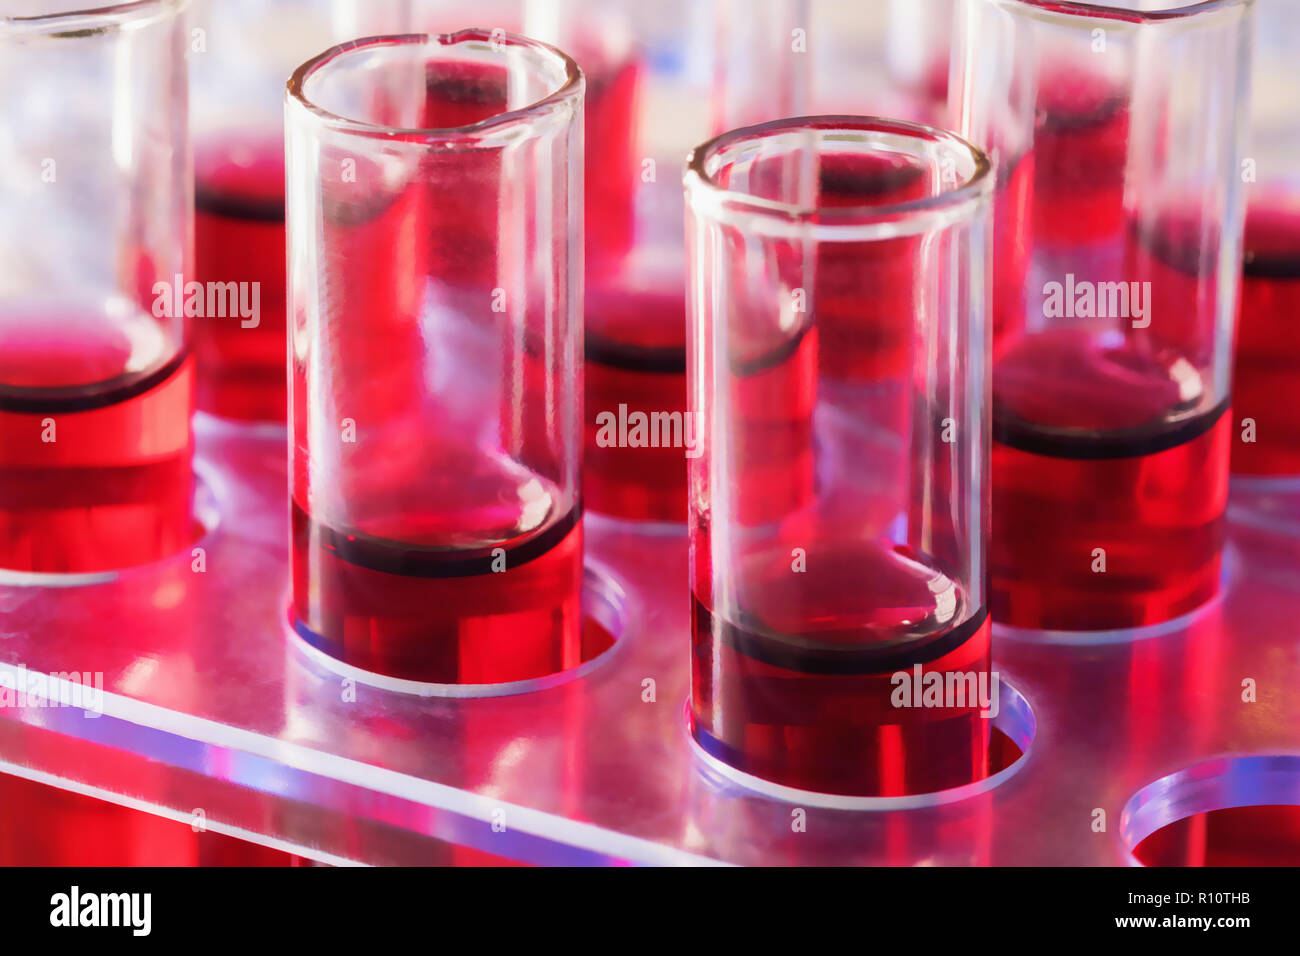 Test tubes Close up arranged in medical laboratory. Medical healthcare analysis Immunity viruses Concept. - Stock Image